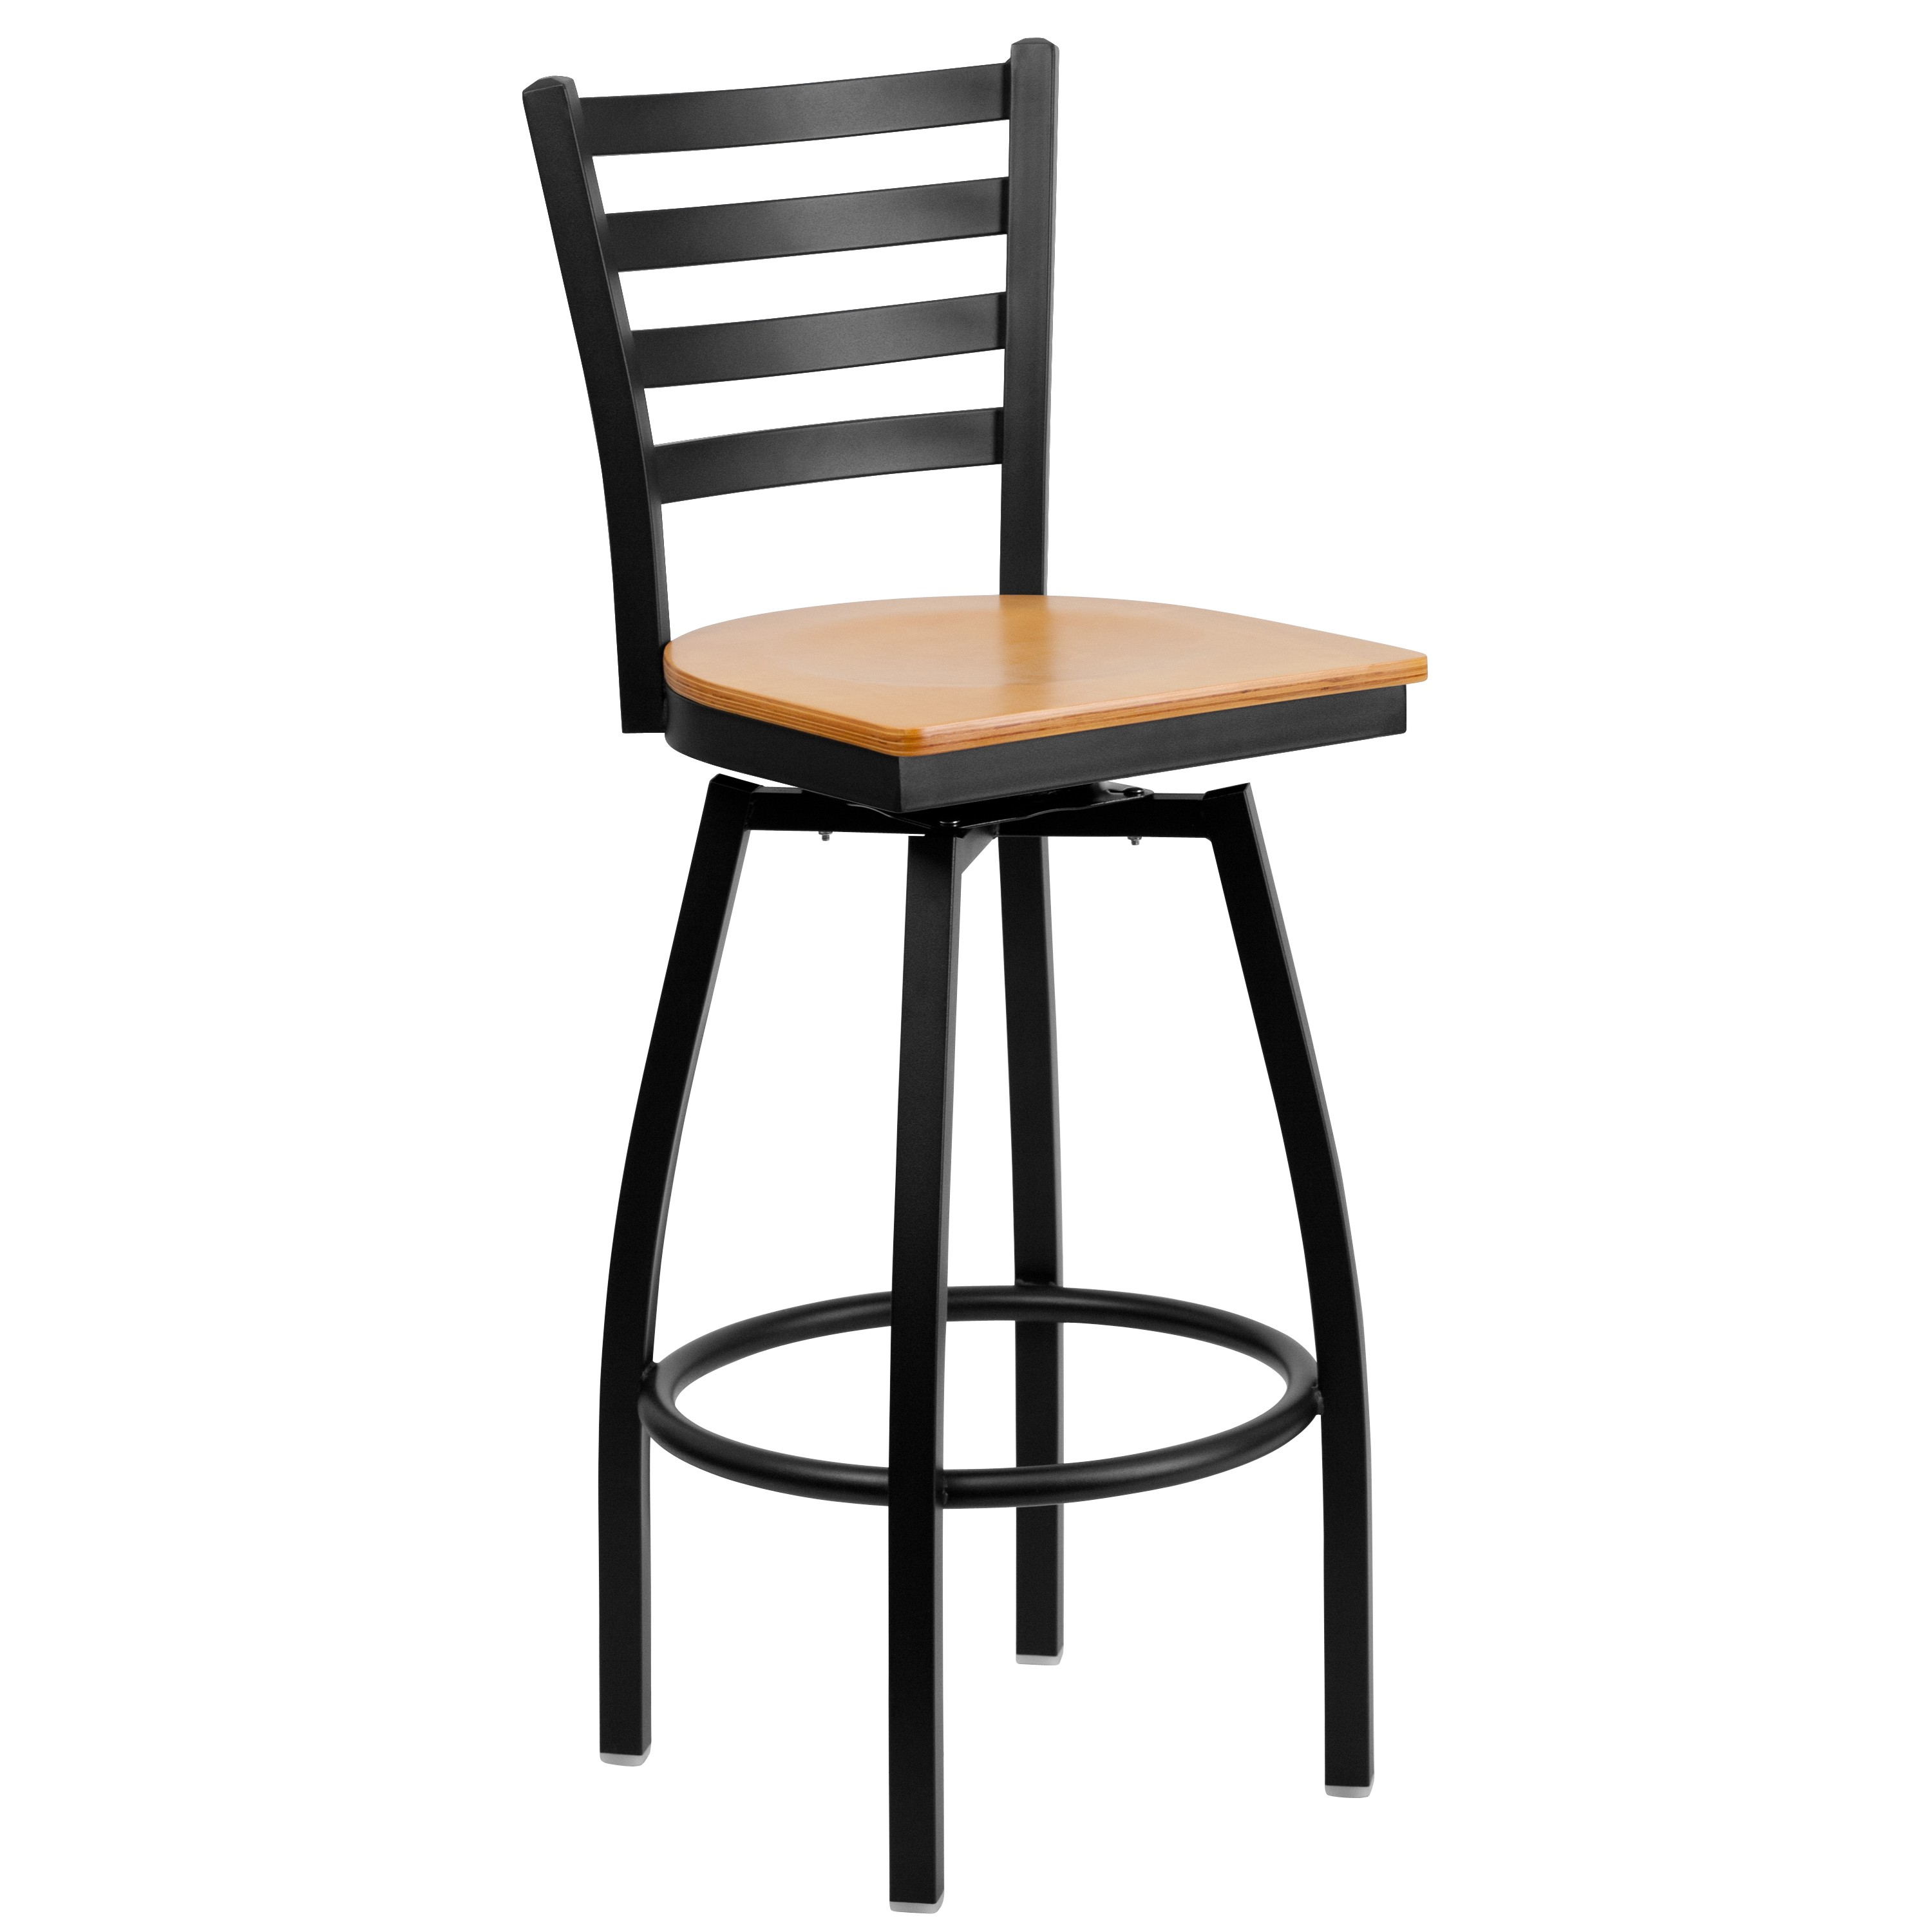 chairs patio stools counter swivel cheap stool of size inch tables metal high furniture bar restaurant commercial full